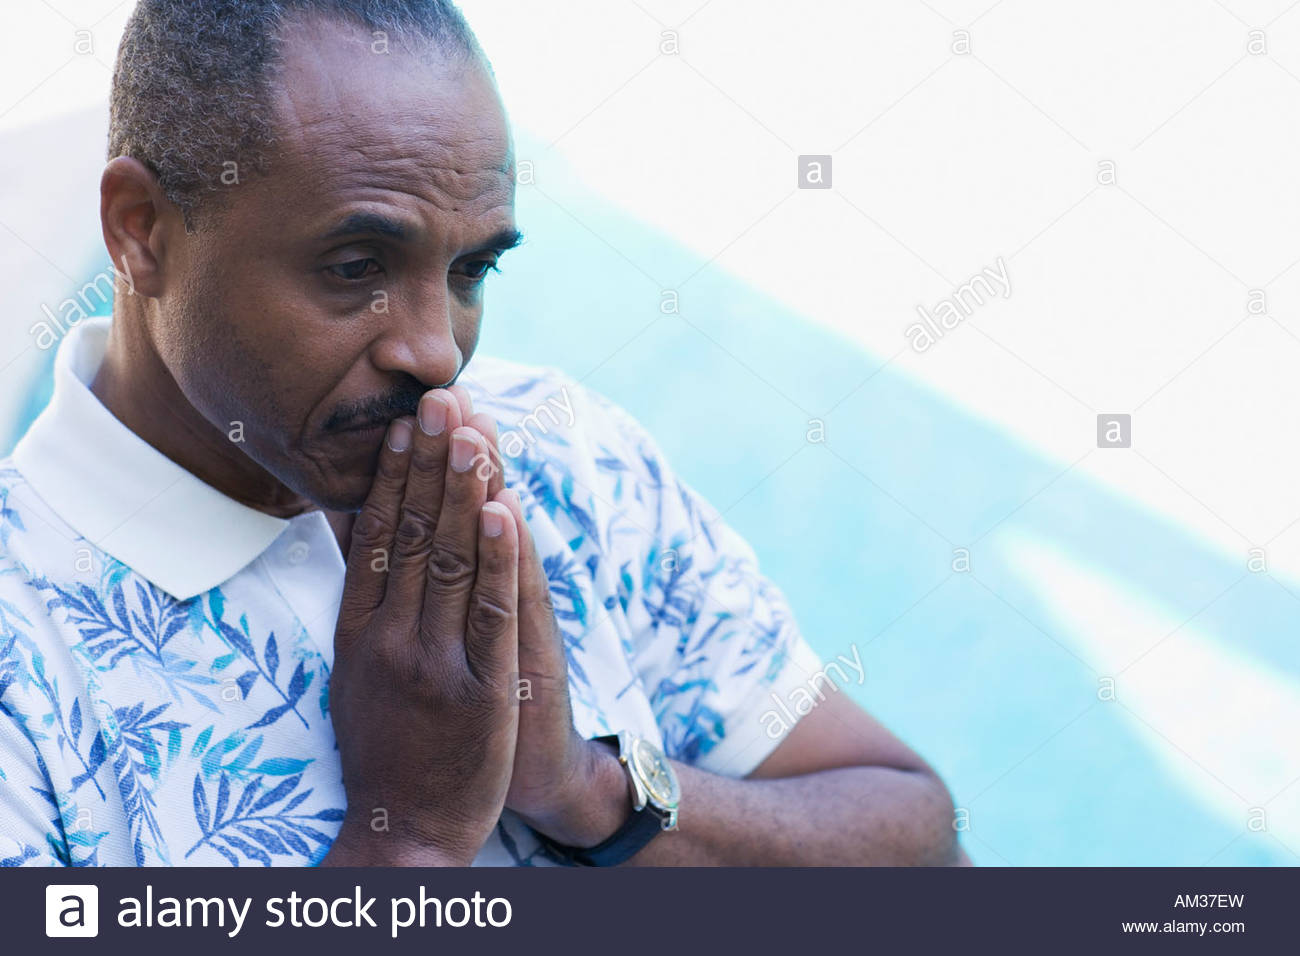 Man with hands to lips thoughtfully by pool Stock Photo